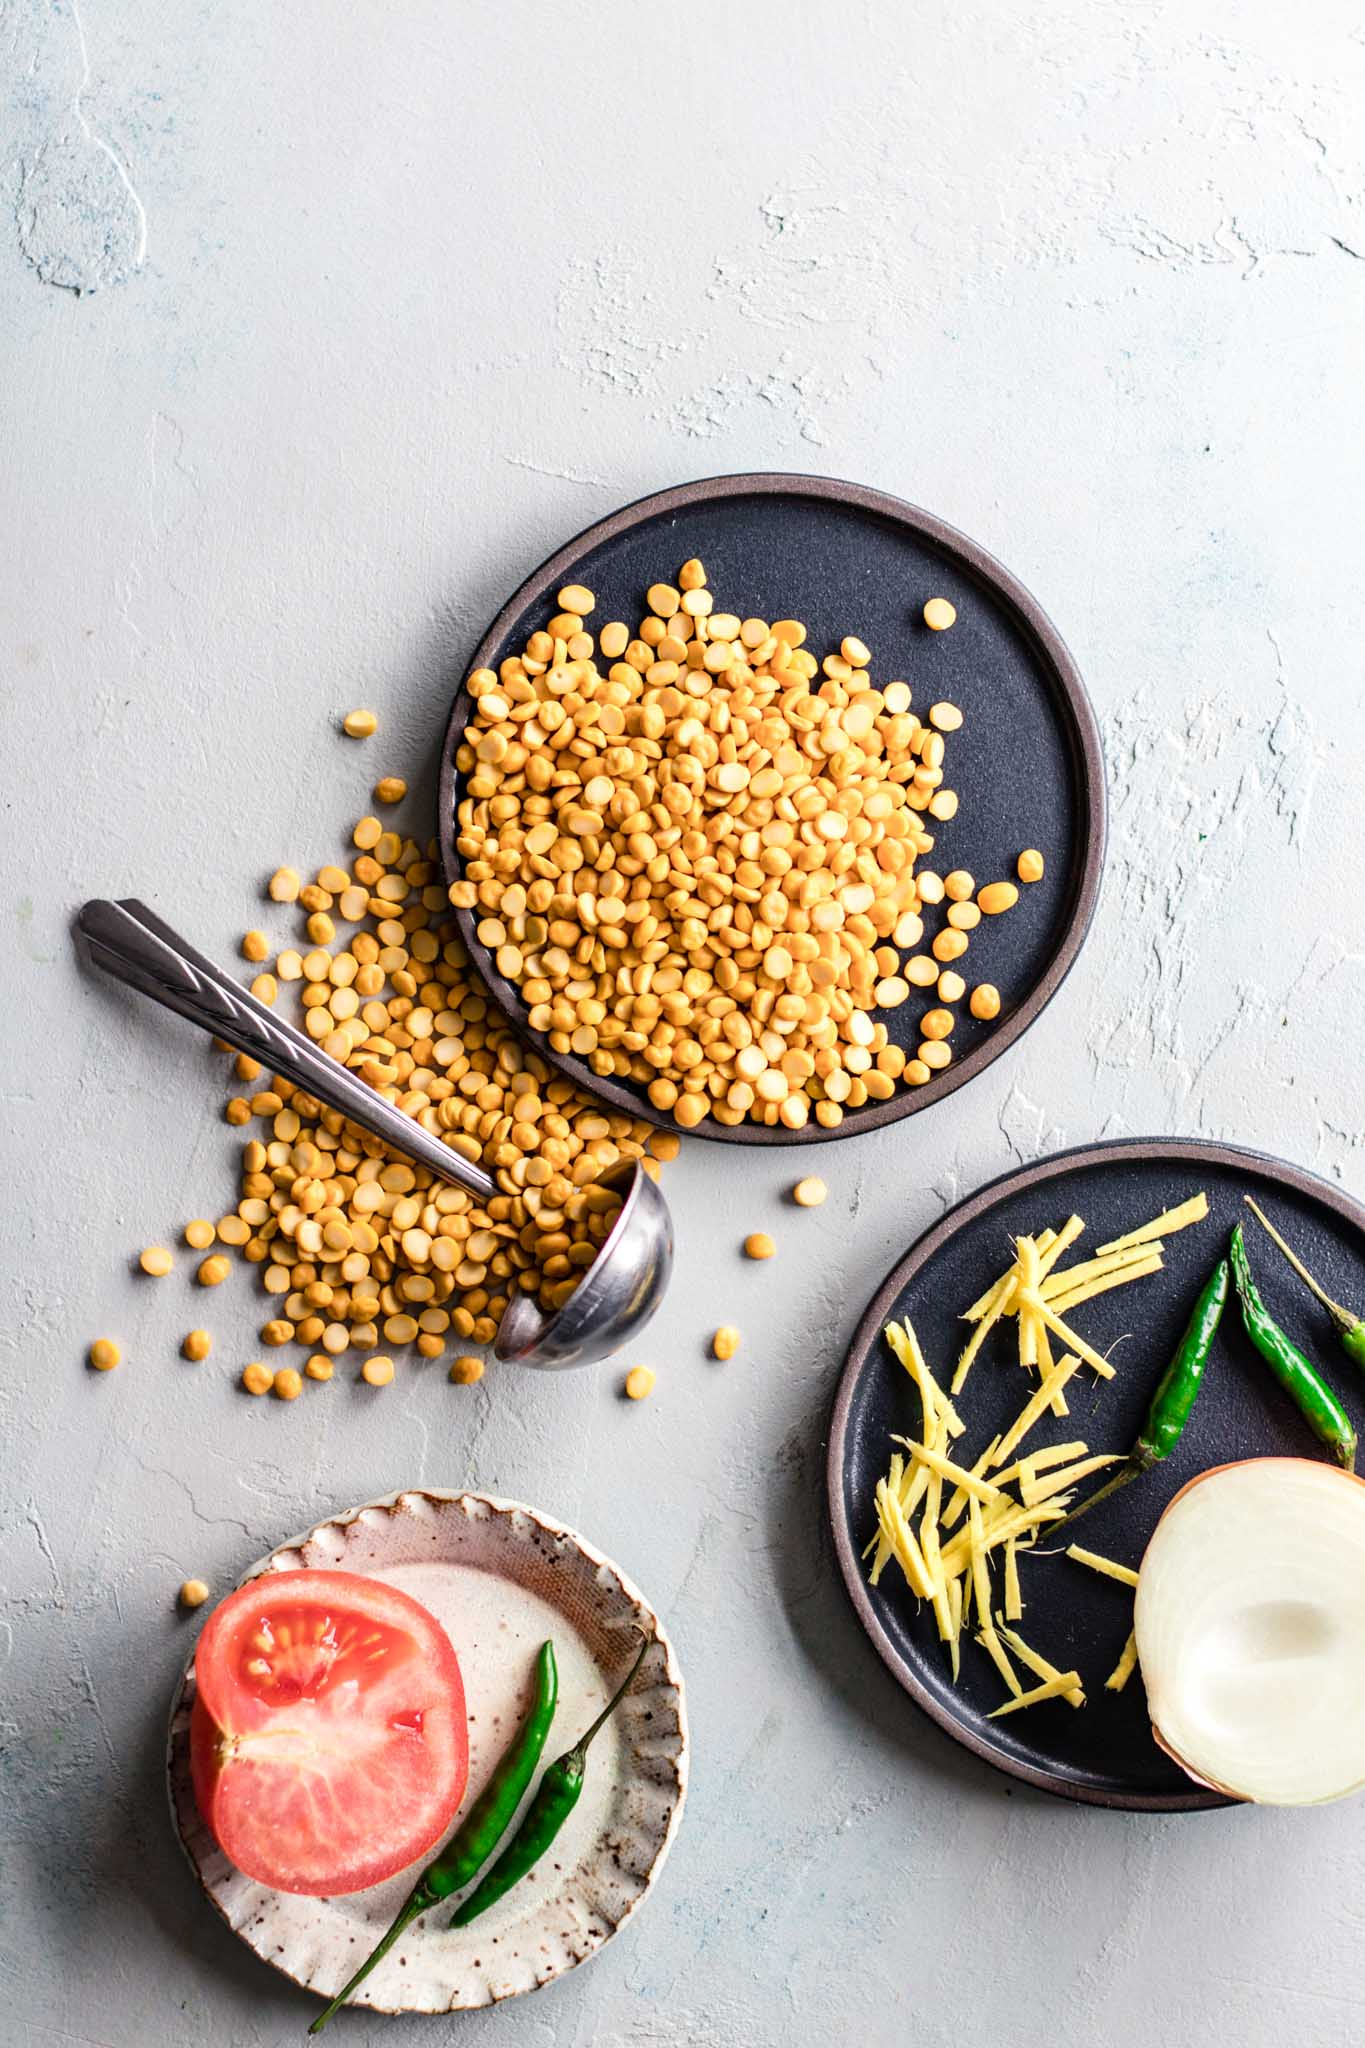 Raw Chana Dal, tomato, onion, green chili peppers, julienned ginger for chana dal recipe